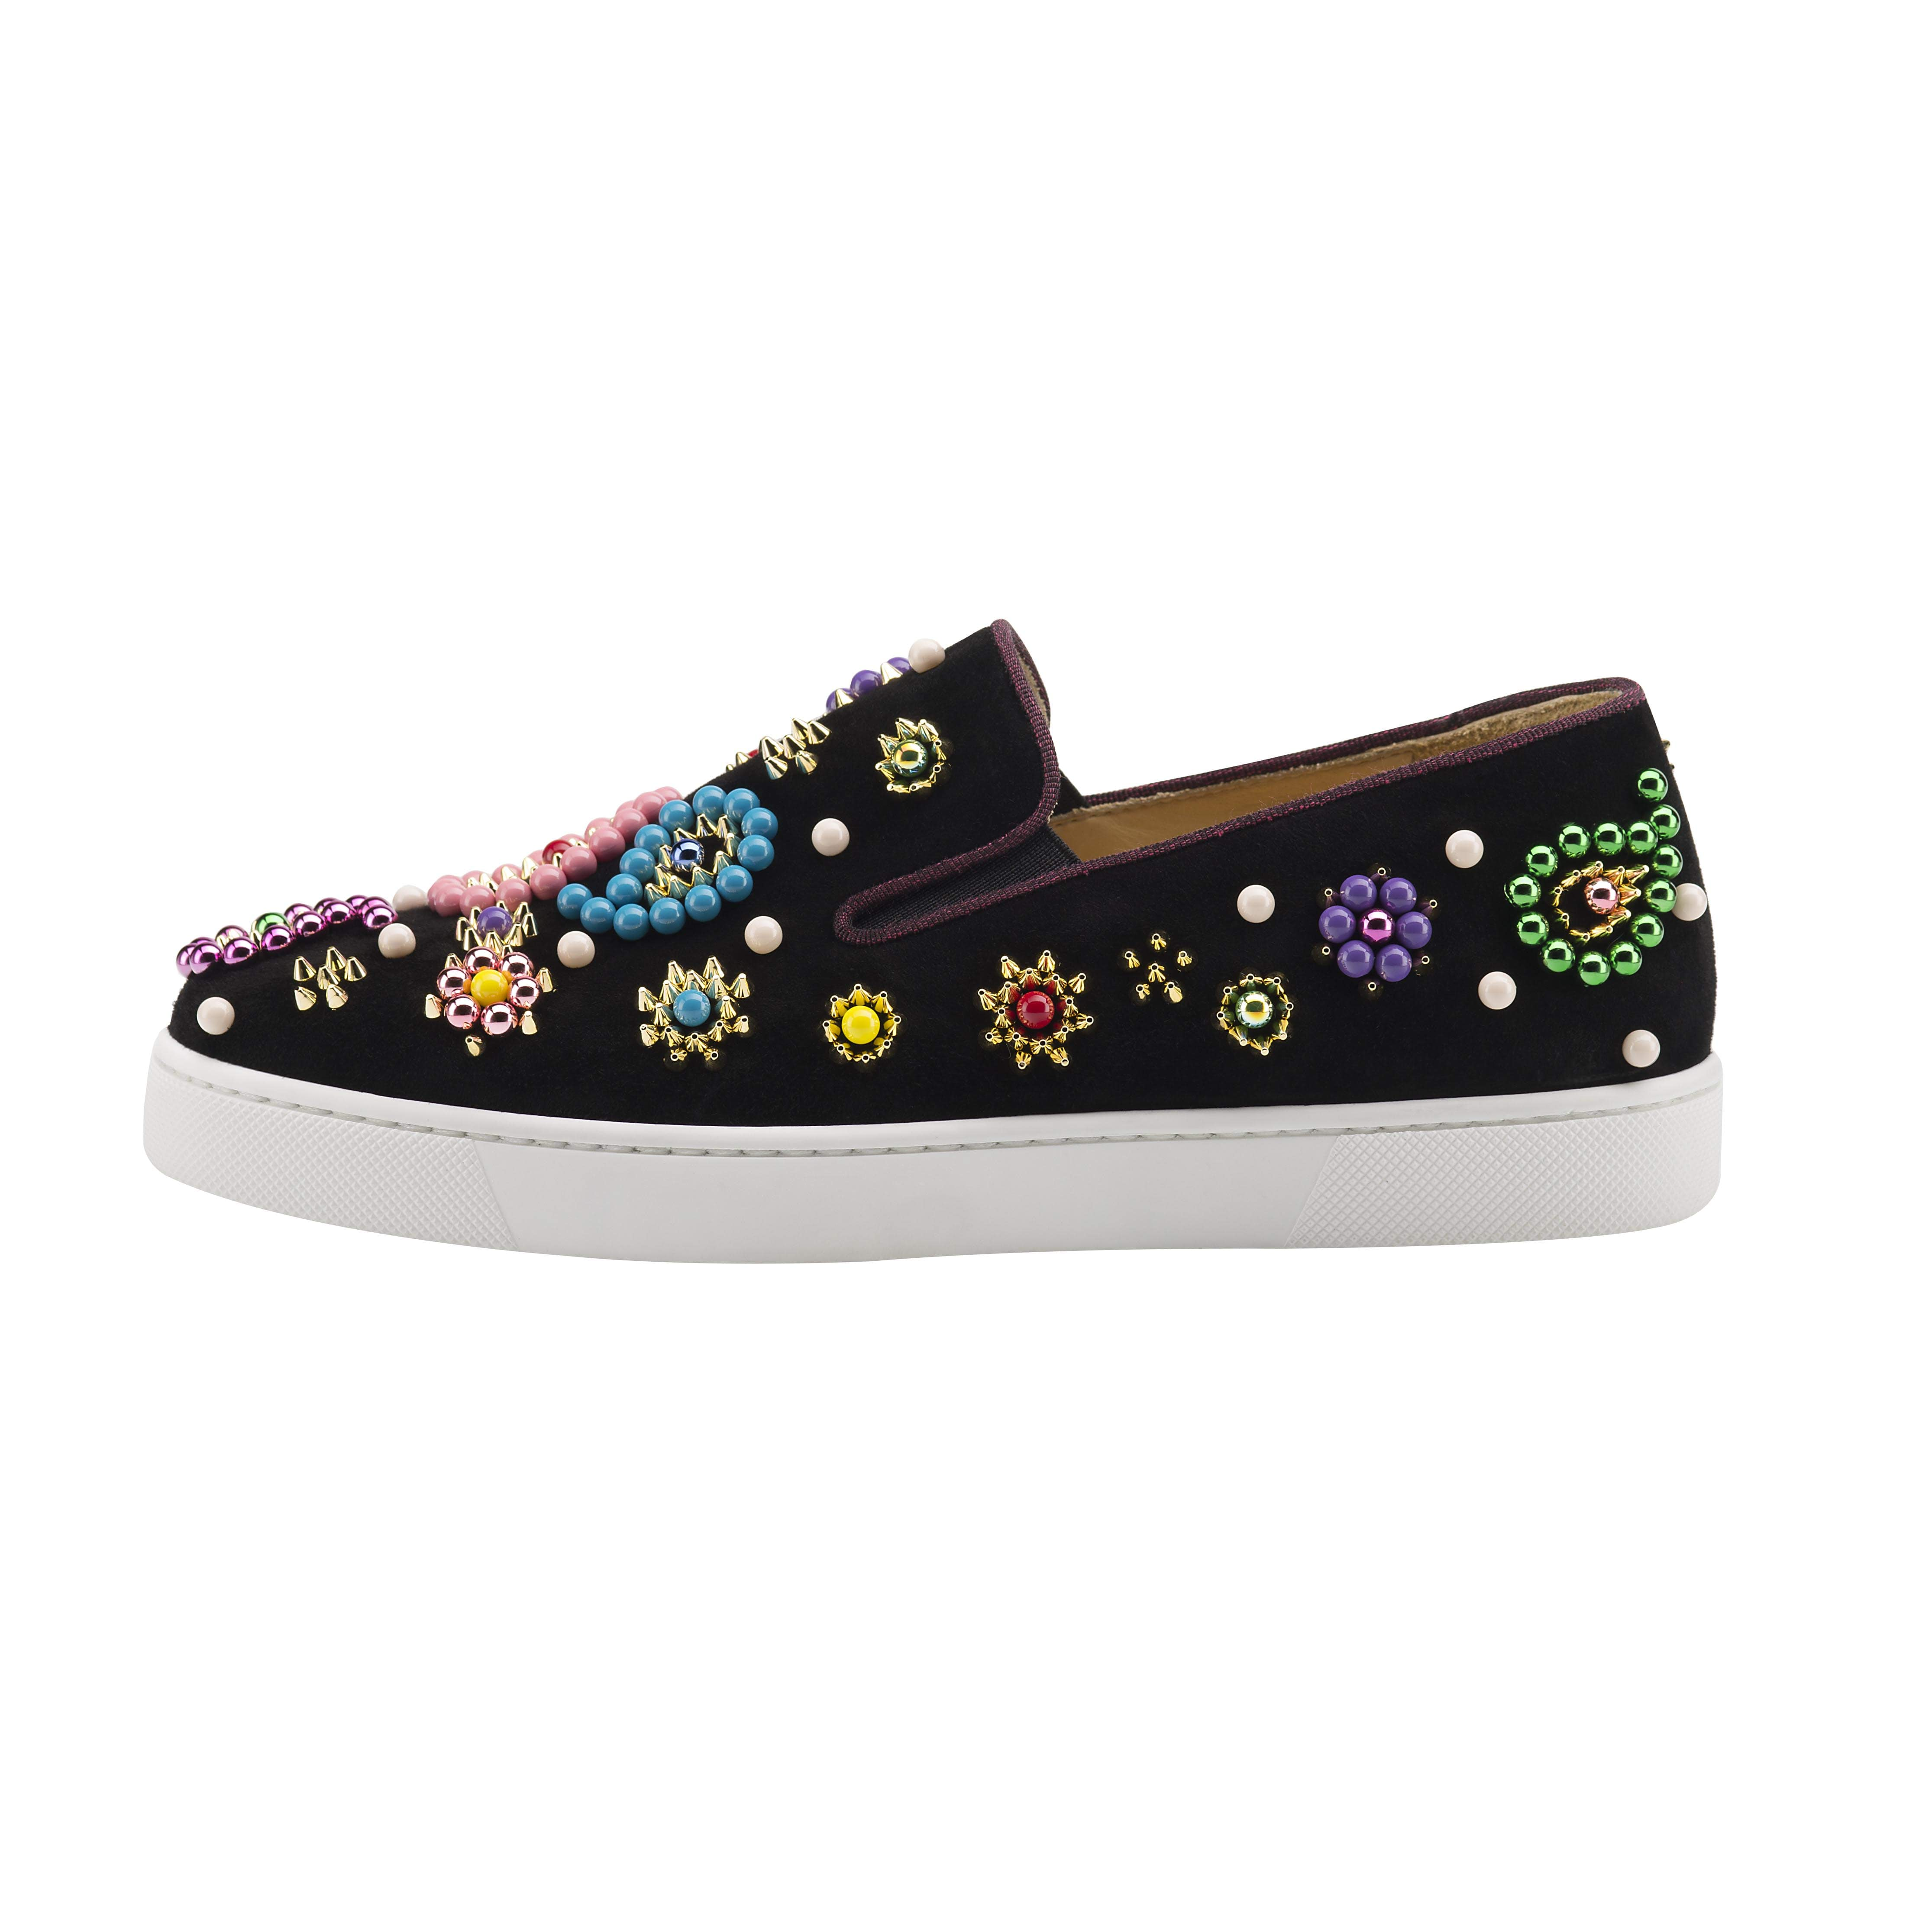 Christian Louboutin Boat Candy Flat Veau Velours GG 1 - AED 5090